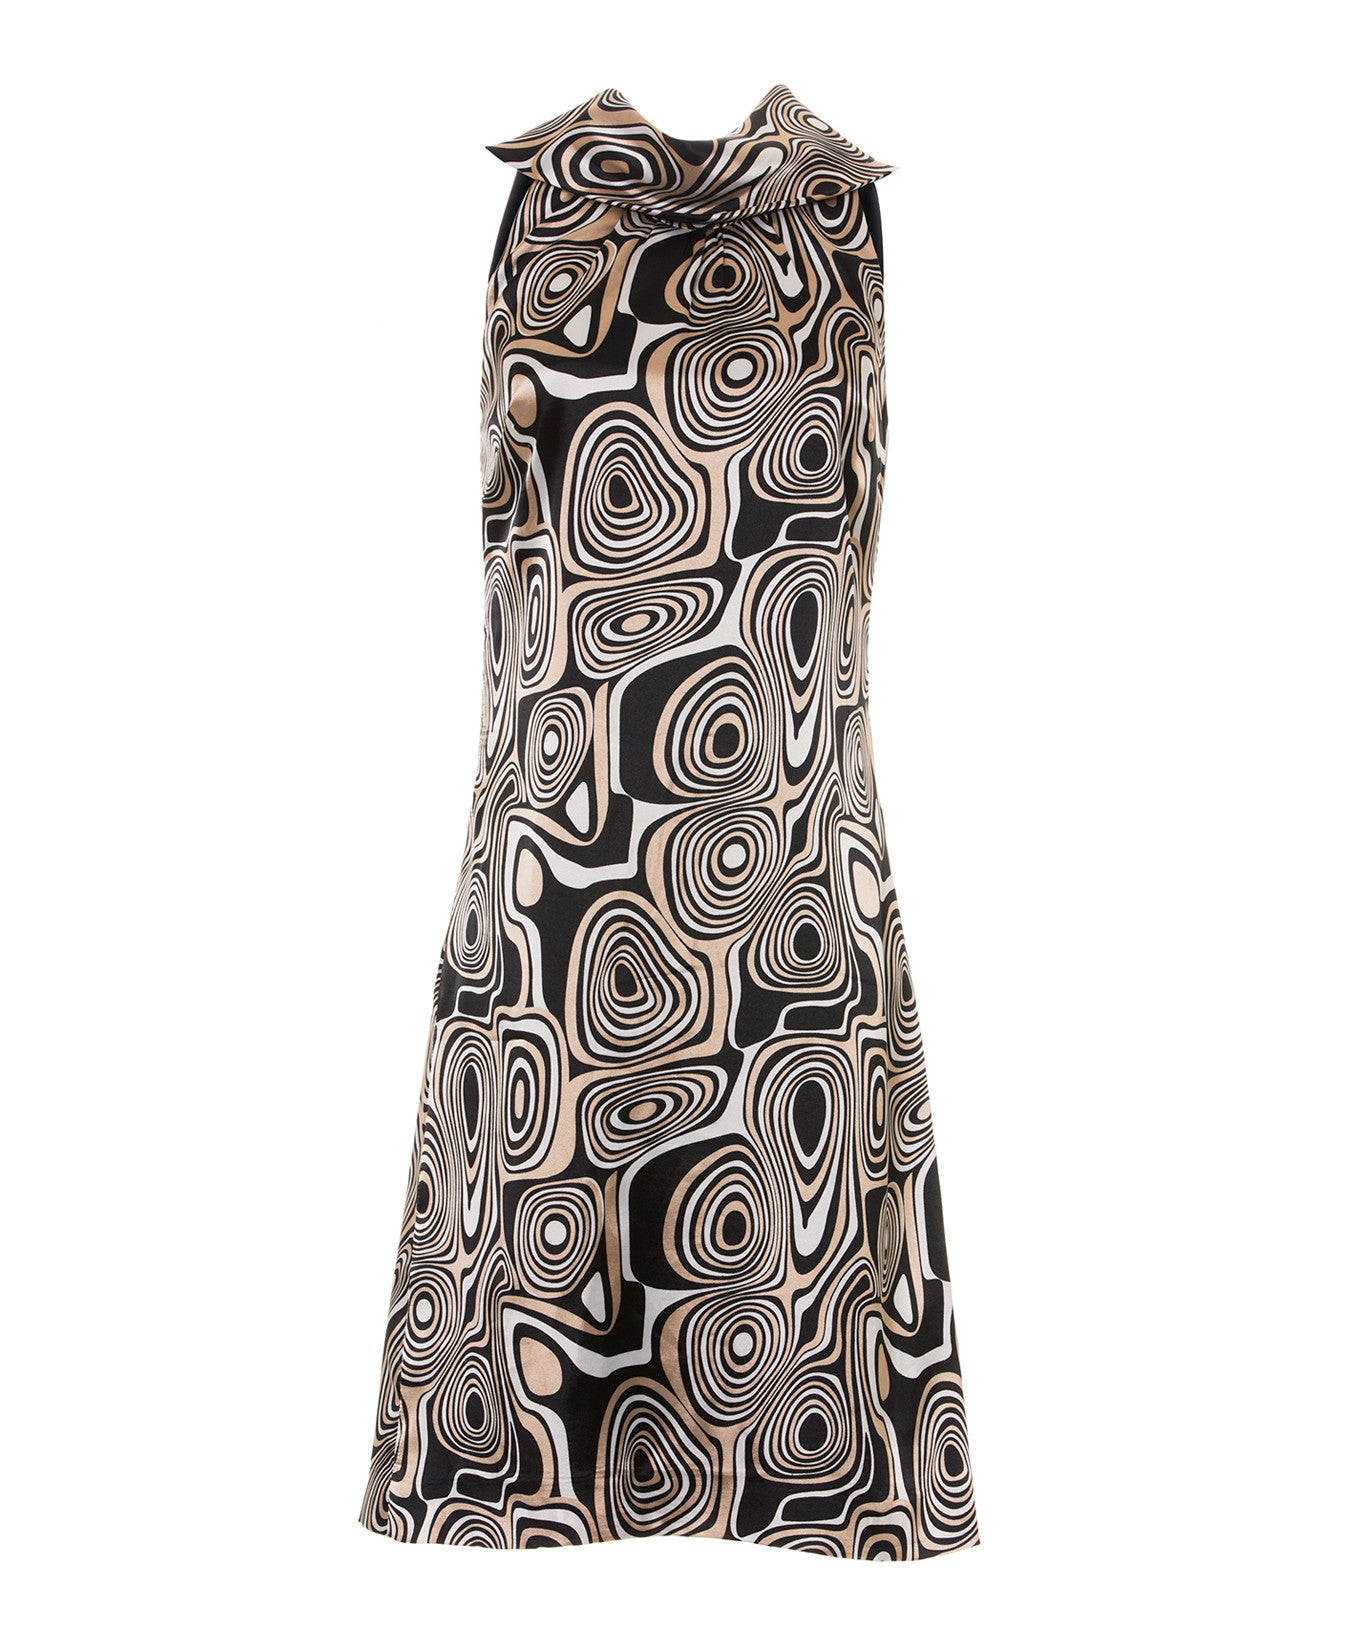 Odile - Multi-purpose dress with geometrical design inspired by the 70